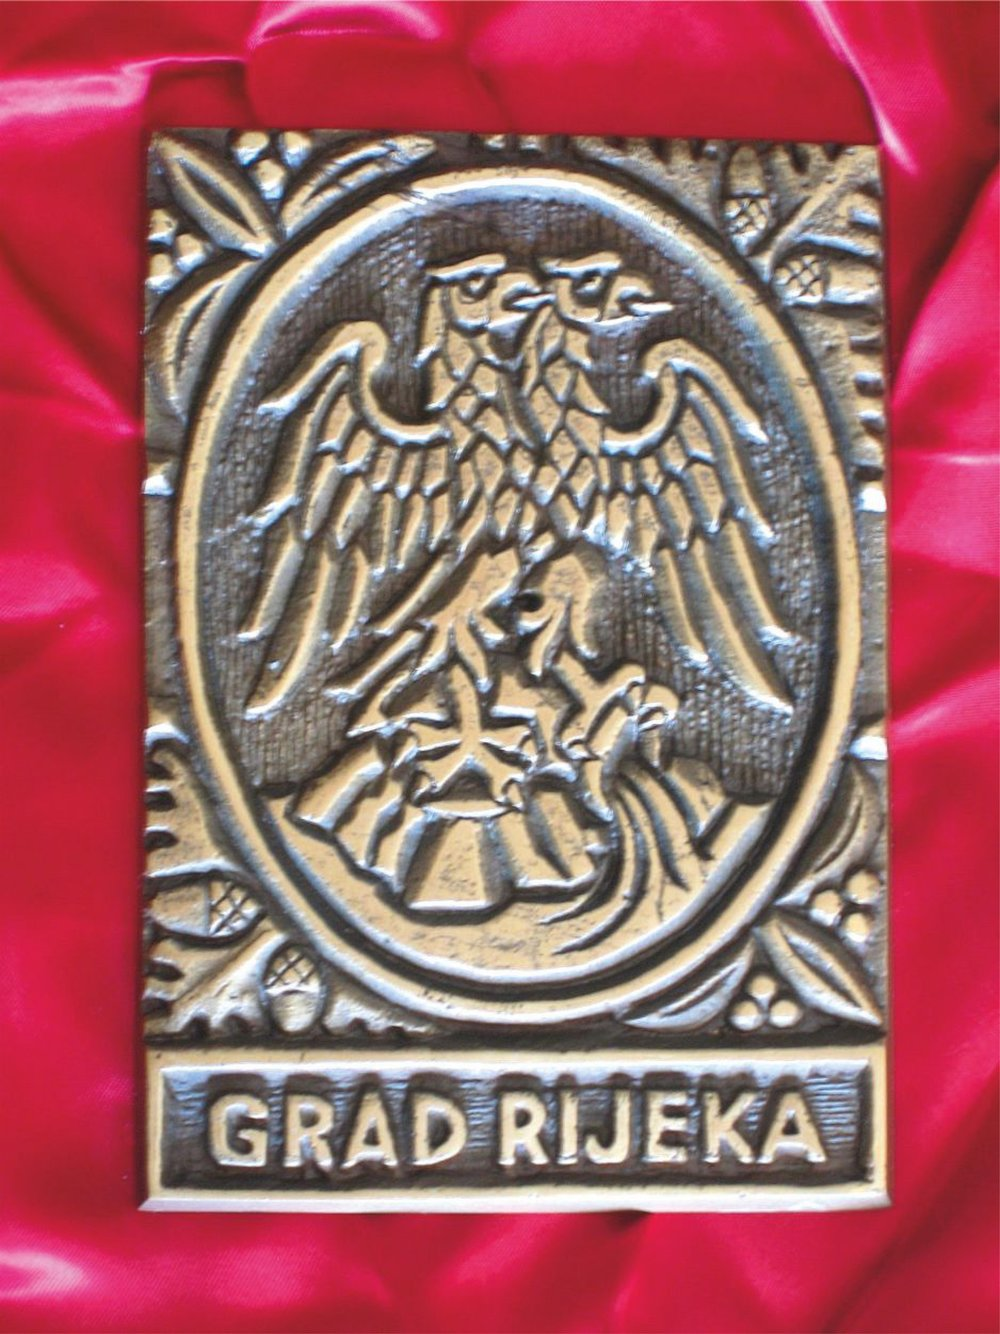 Design by Heraldic art d.o.o. and production of the plaque with the coat of arms of the city of Rijeka, Croatia.   Dizajn i izrada plakete s grbom Grada Rijeke.